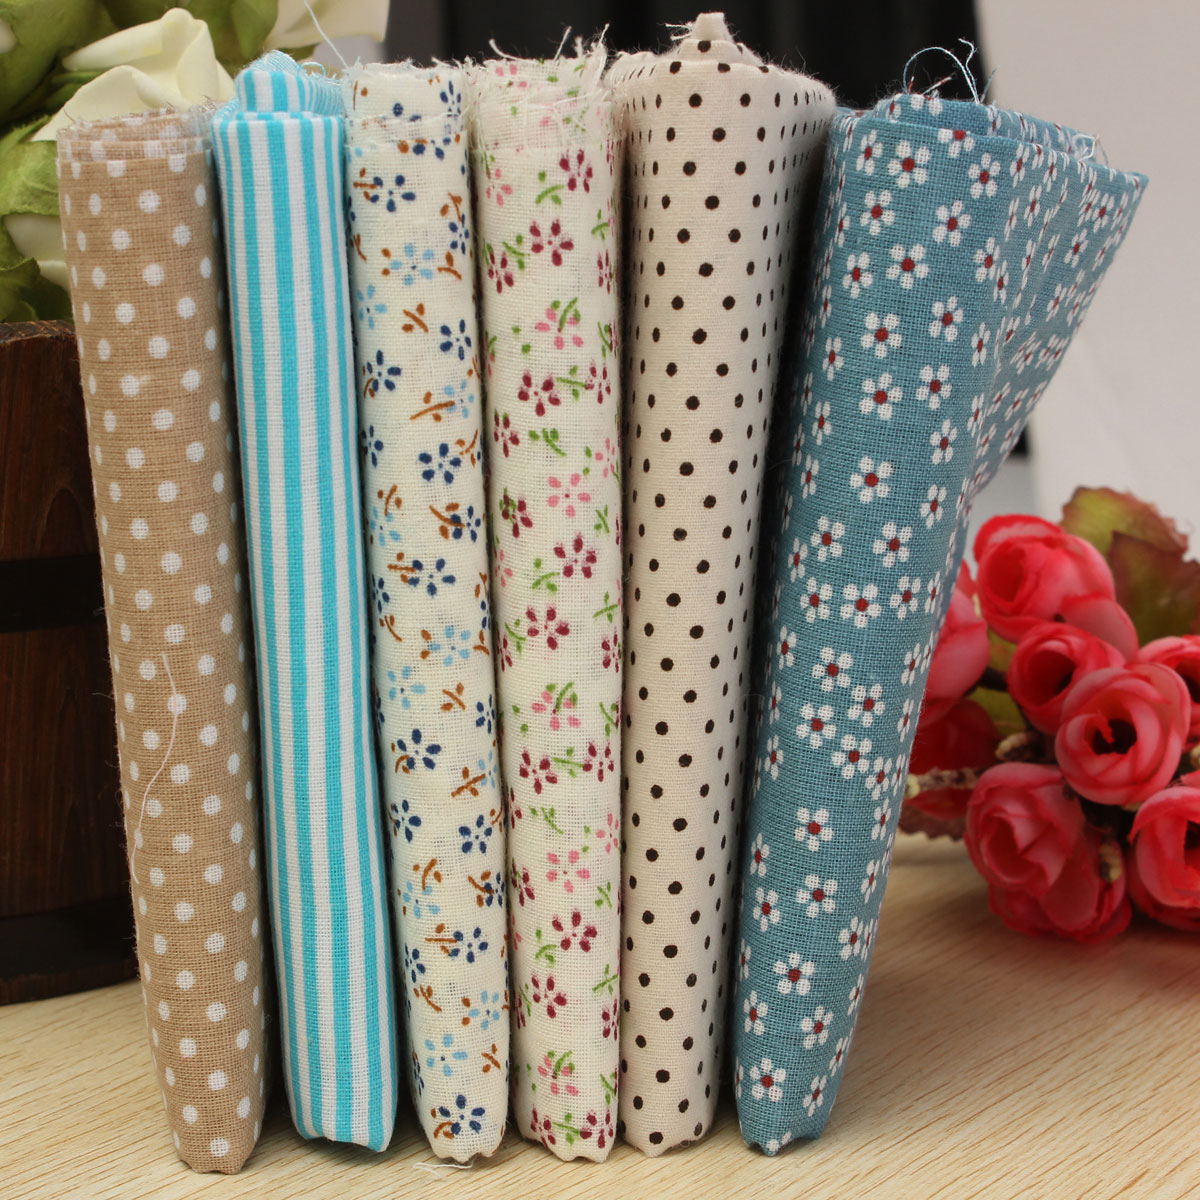 6pcs 50x50cm cotton mixed color sewing fabric dolls purse for Cotton sewing material